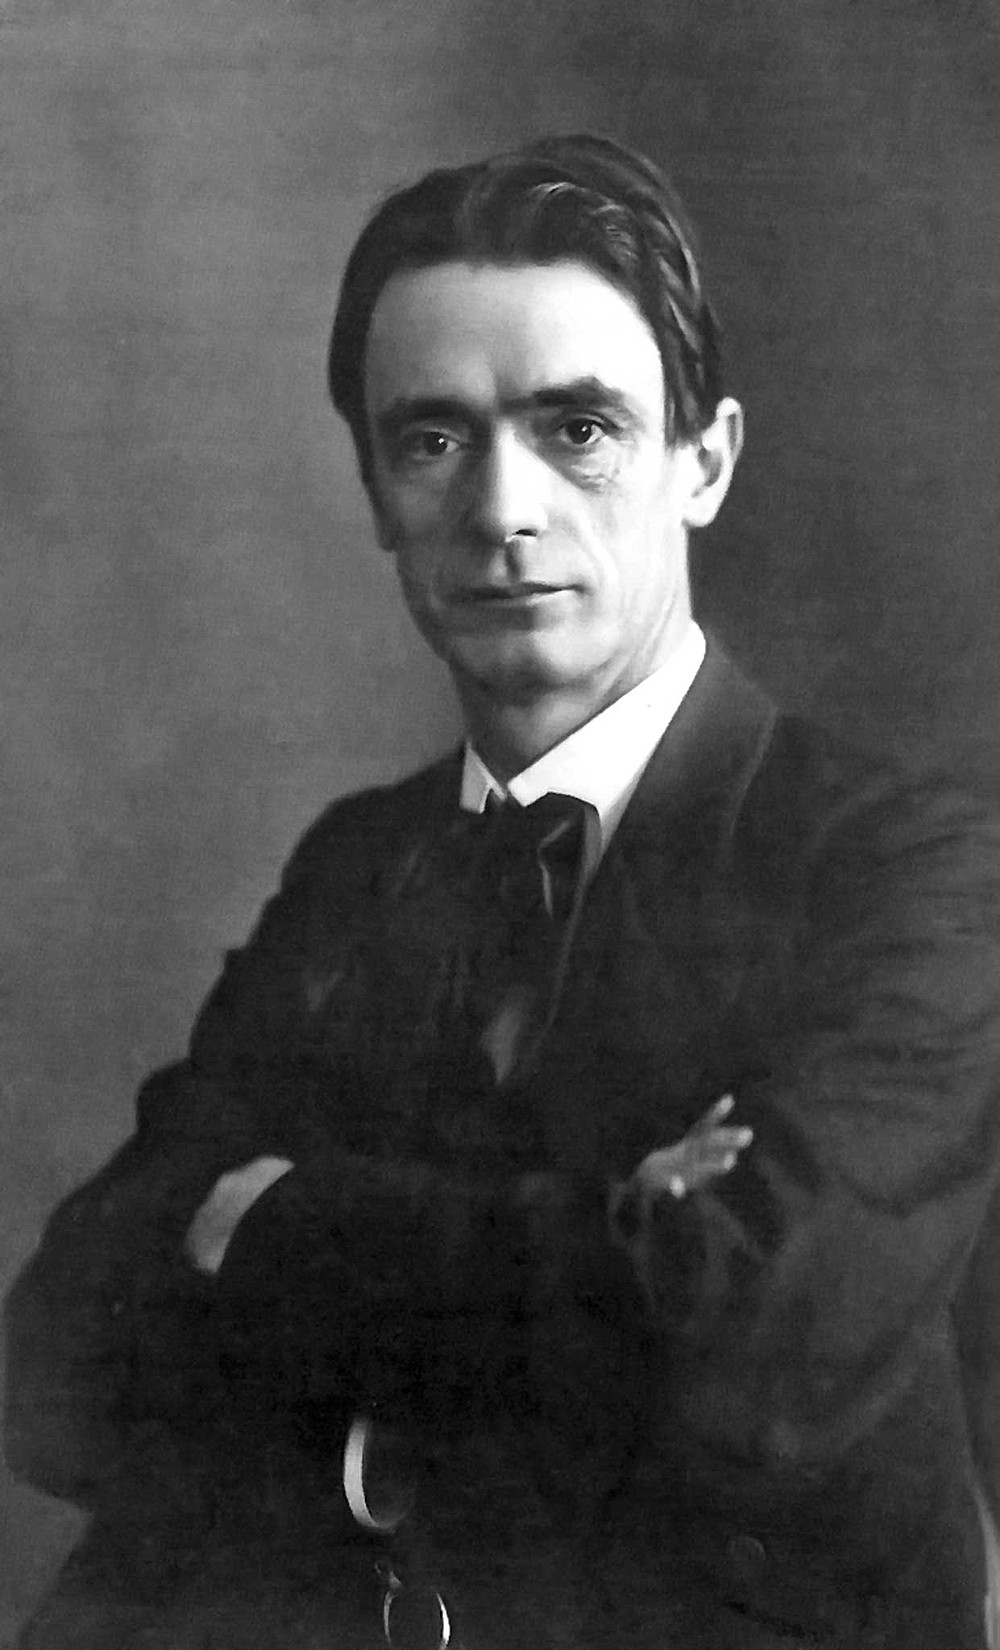 "Rudolf Steiner's ideas became the basis of both biodynamic and organic farming, although the organic movement today rejects his more esoteric, occult, or even ""spiritual"" claims."